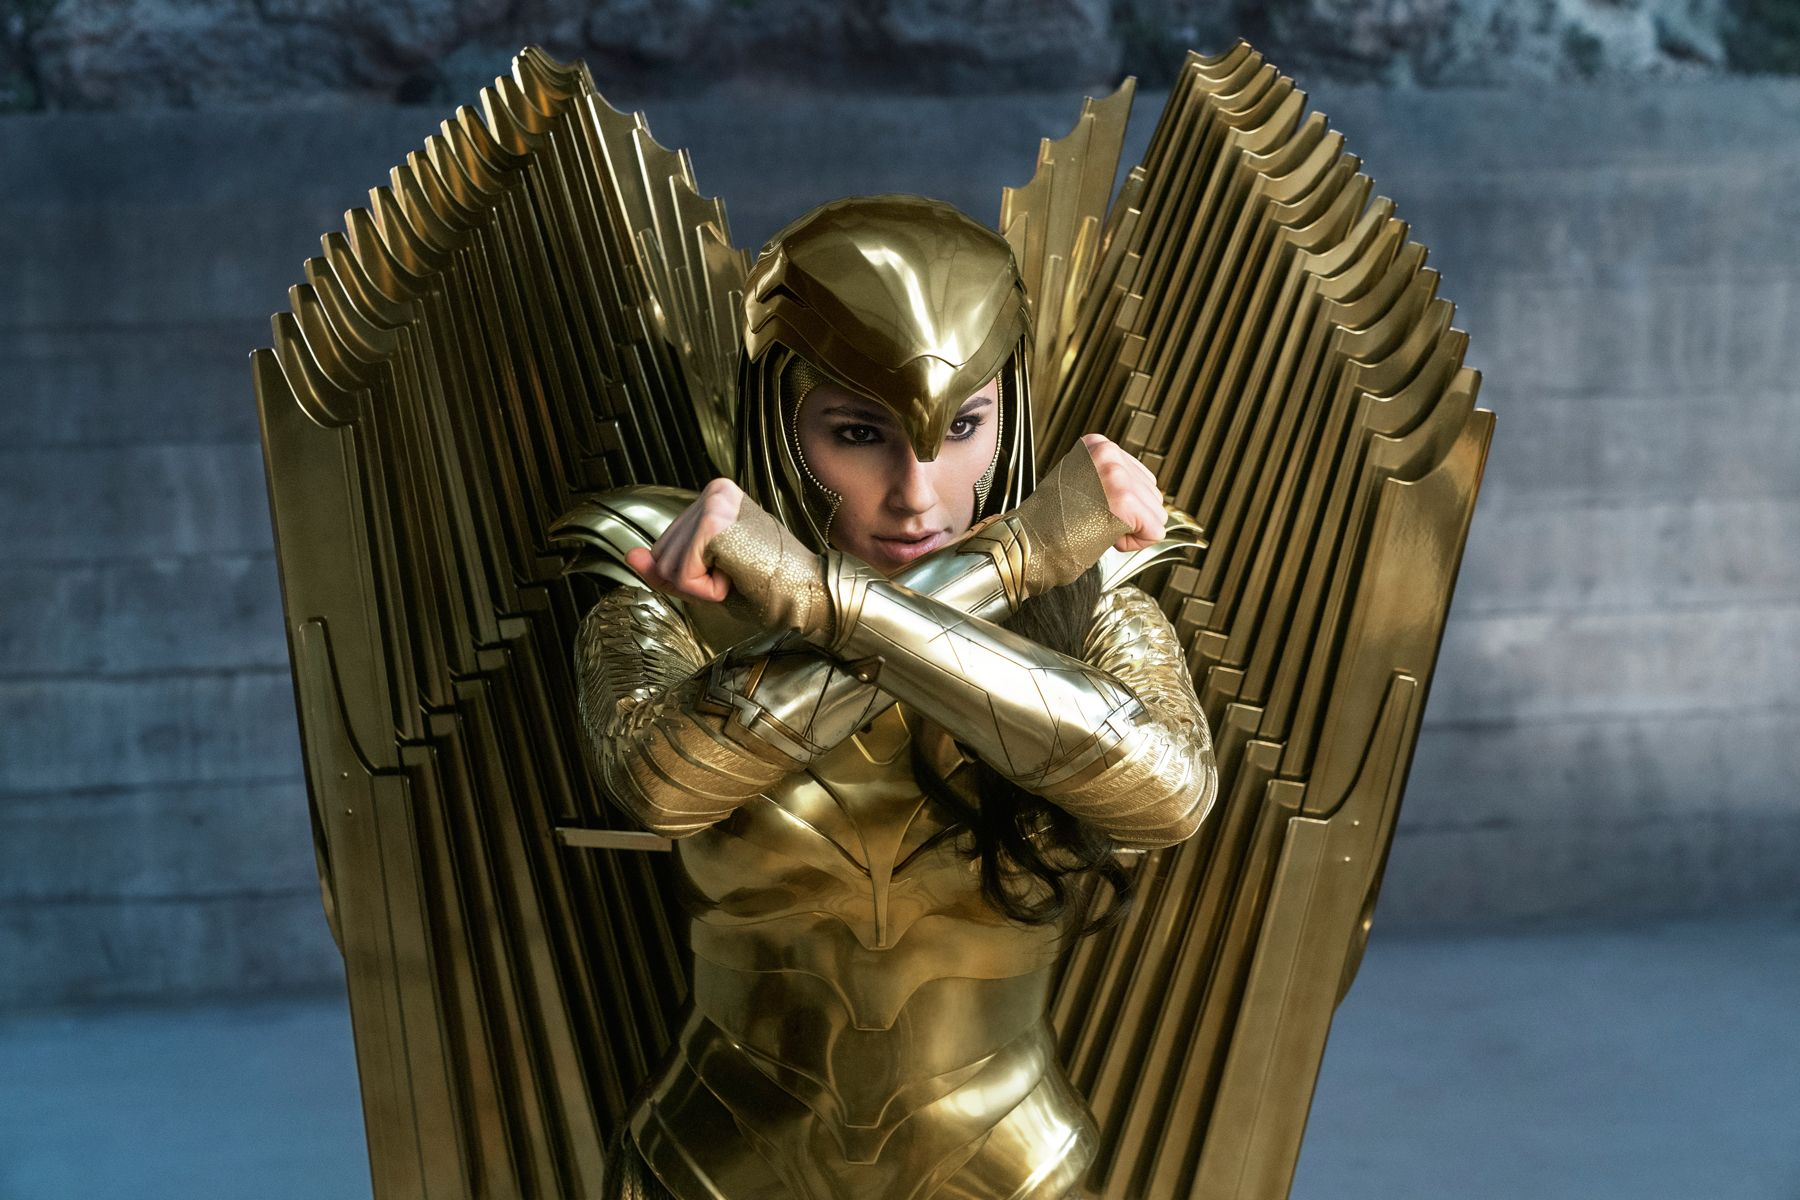 'Wonder Woman 1984' in Gold